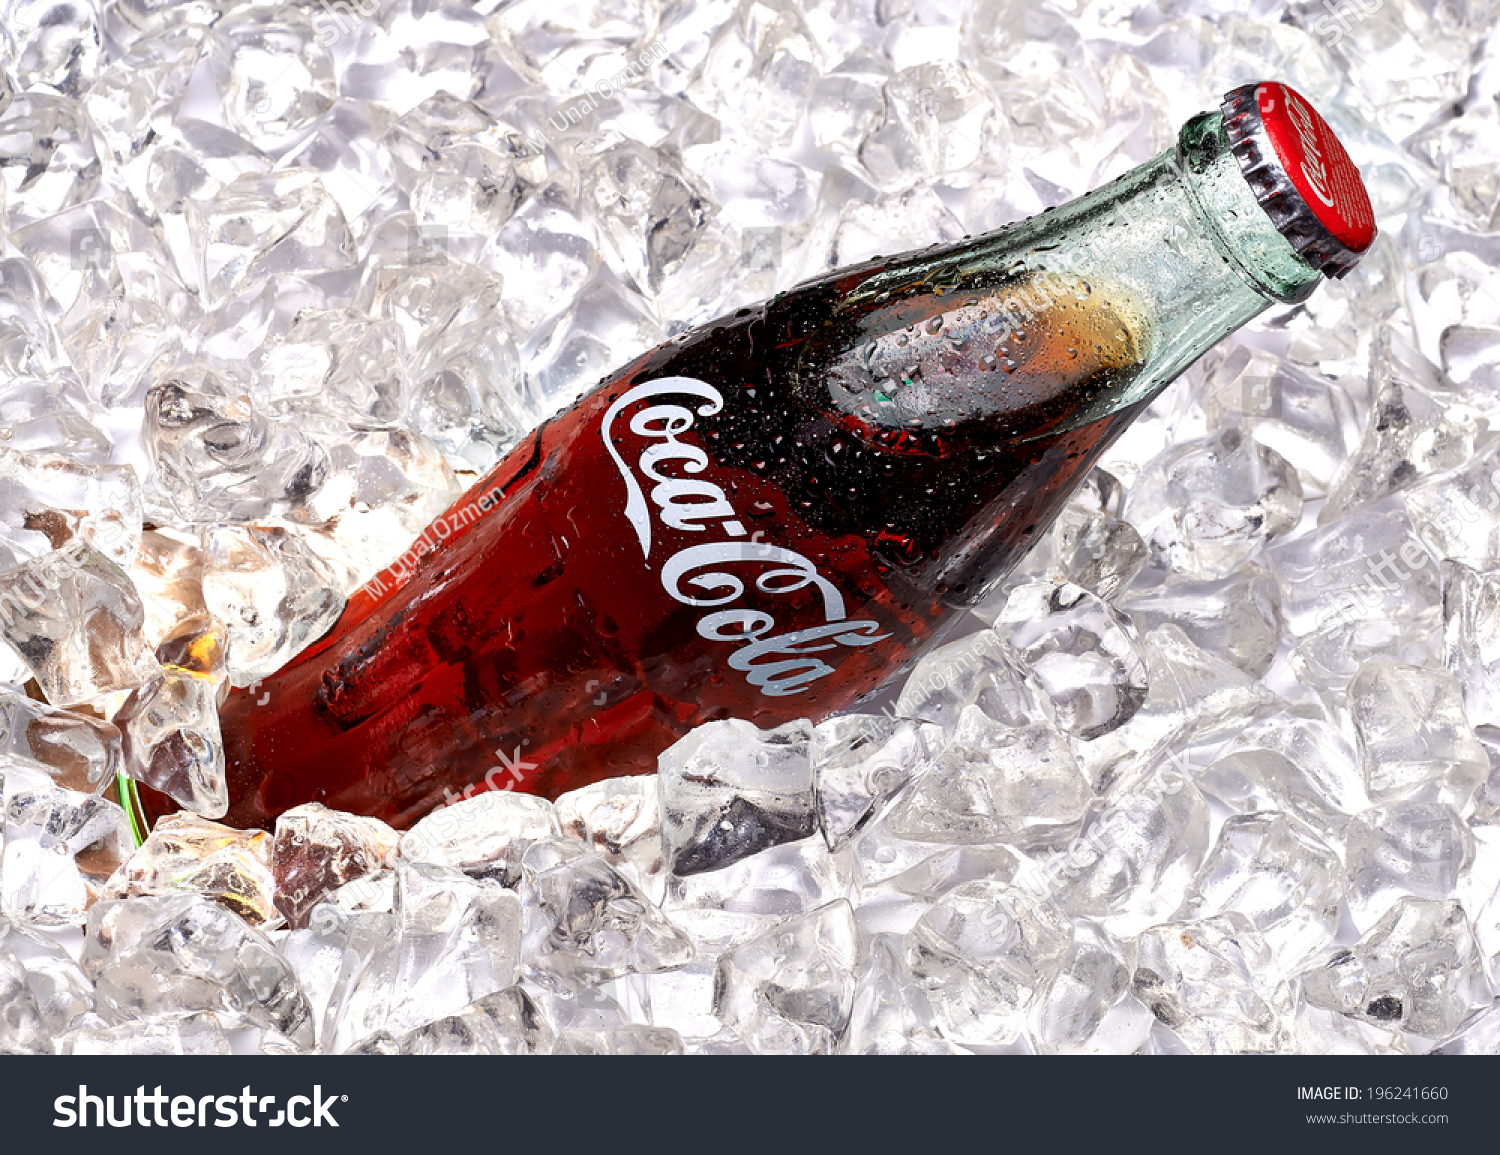 Ice coca cola company is the most popular market leader in turkey